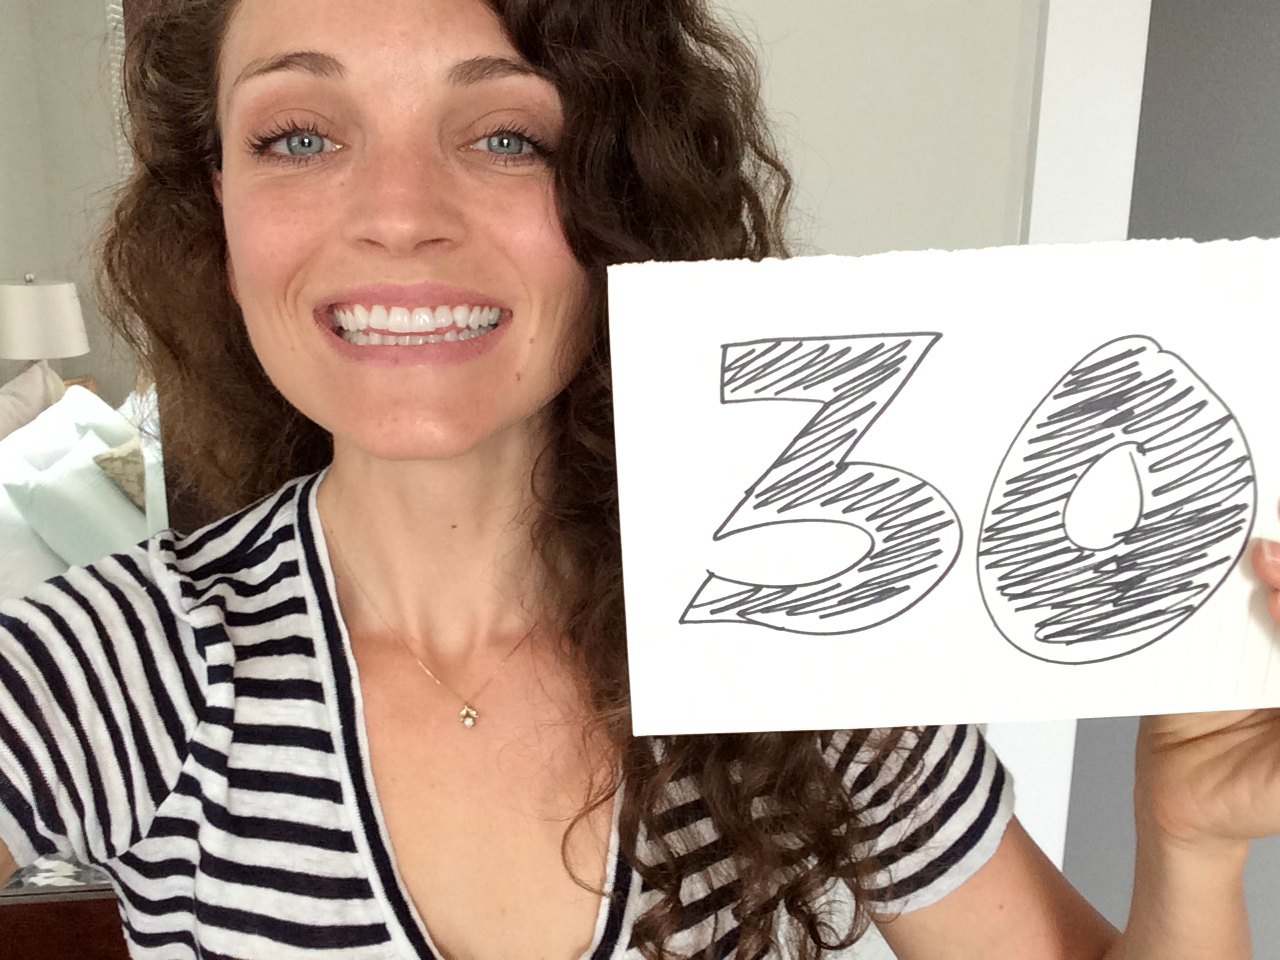 30 things I learned in my 20s